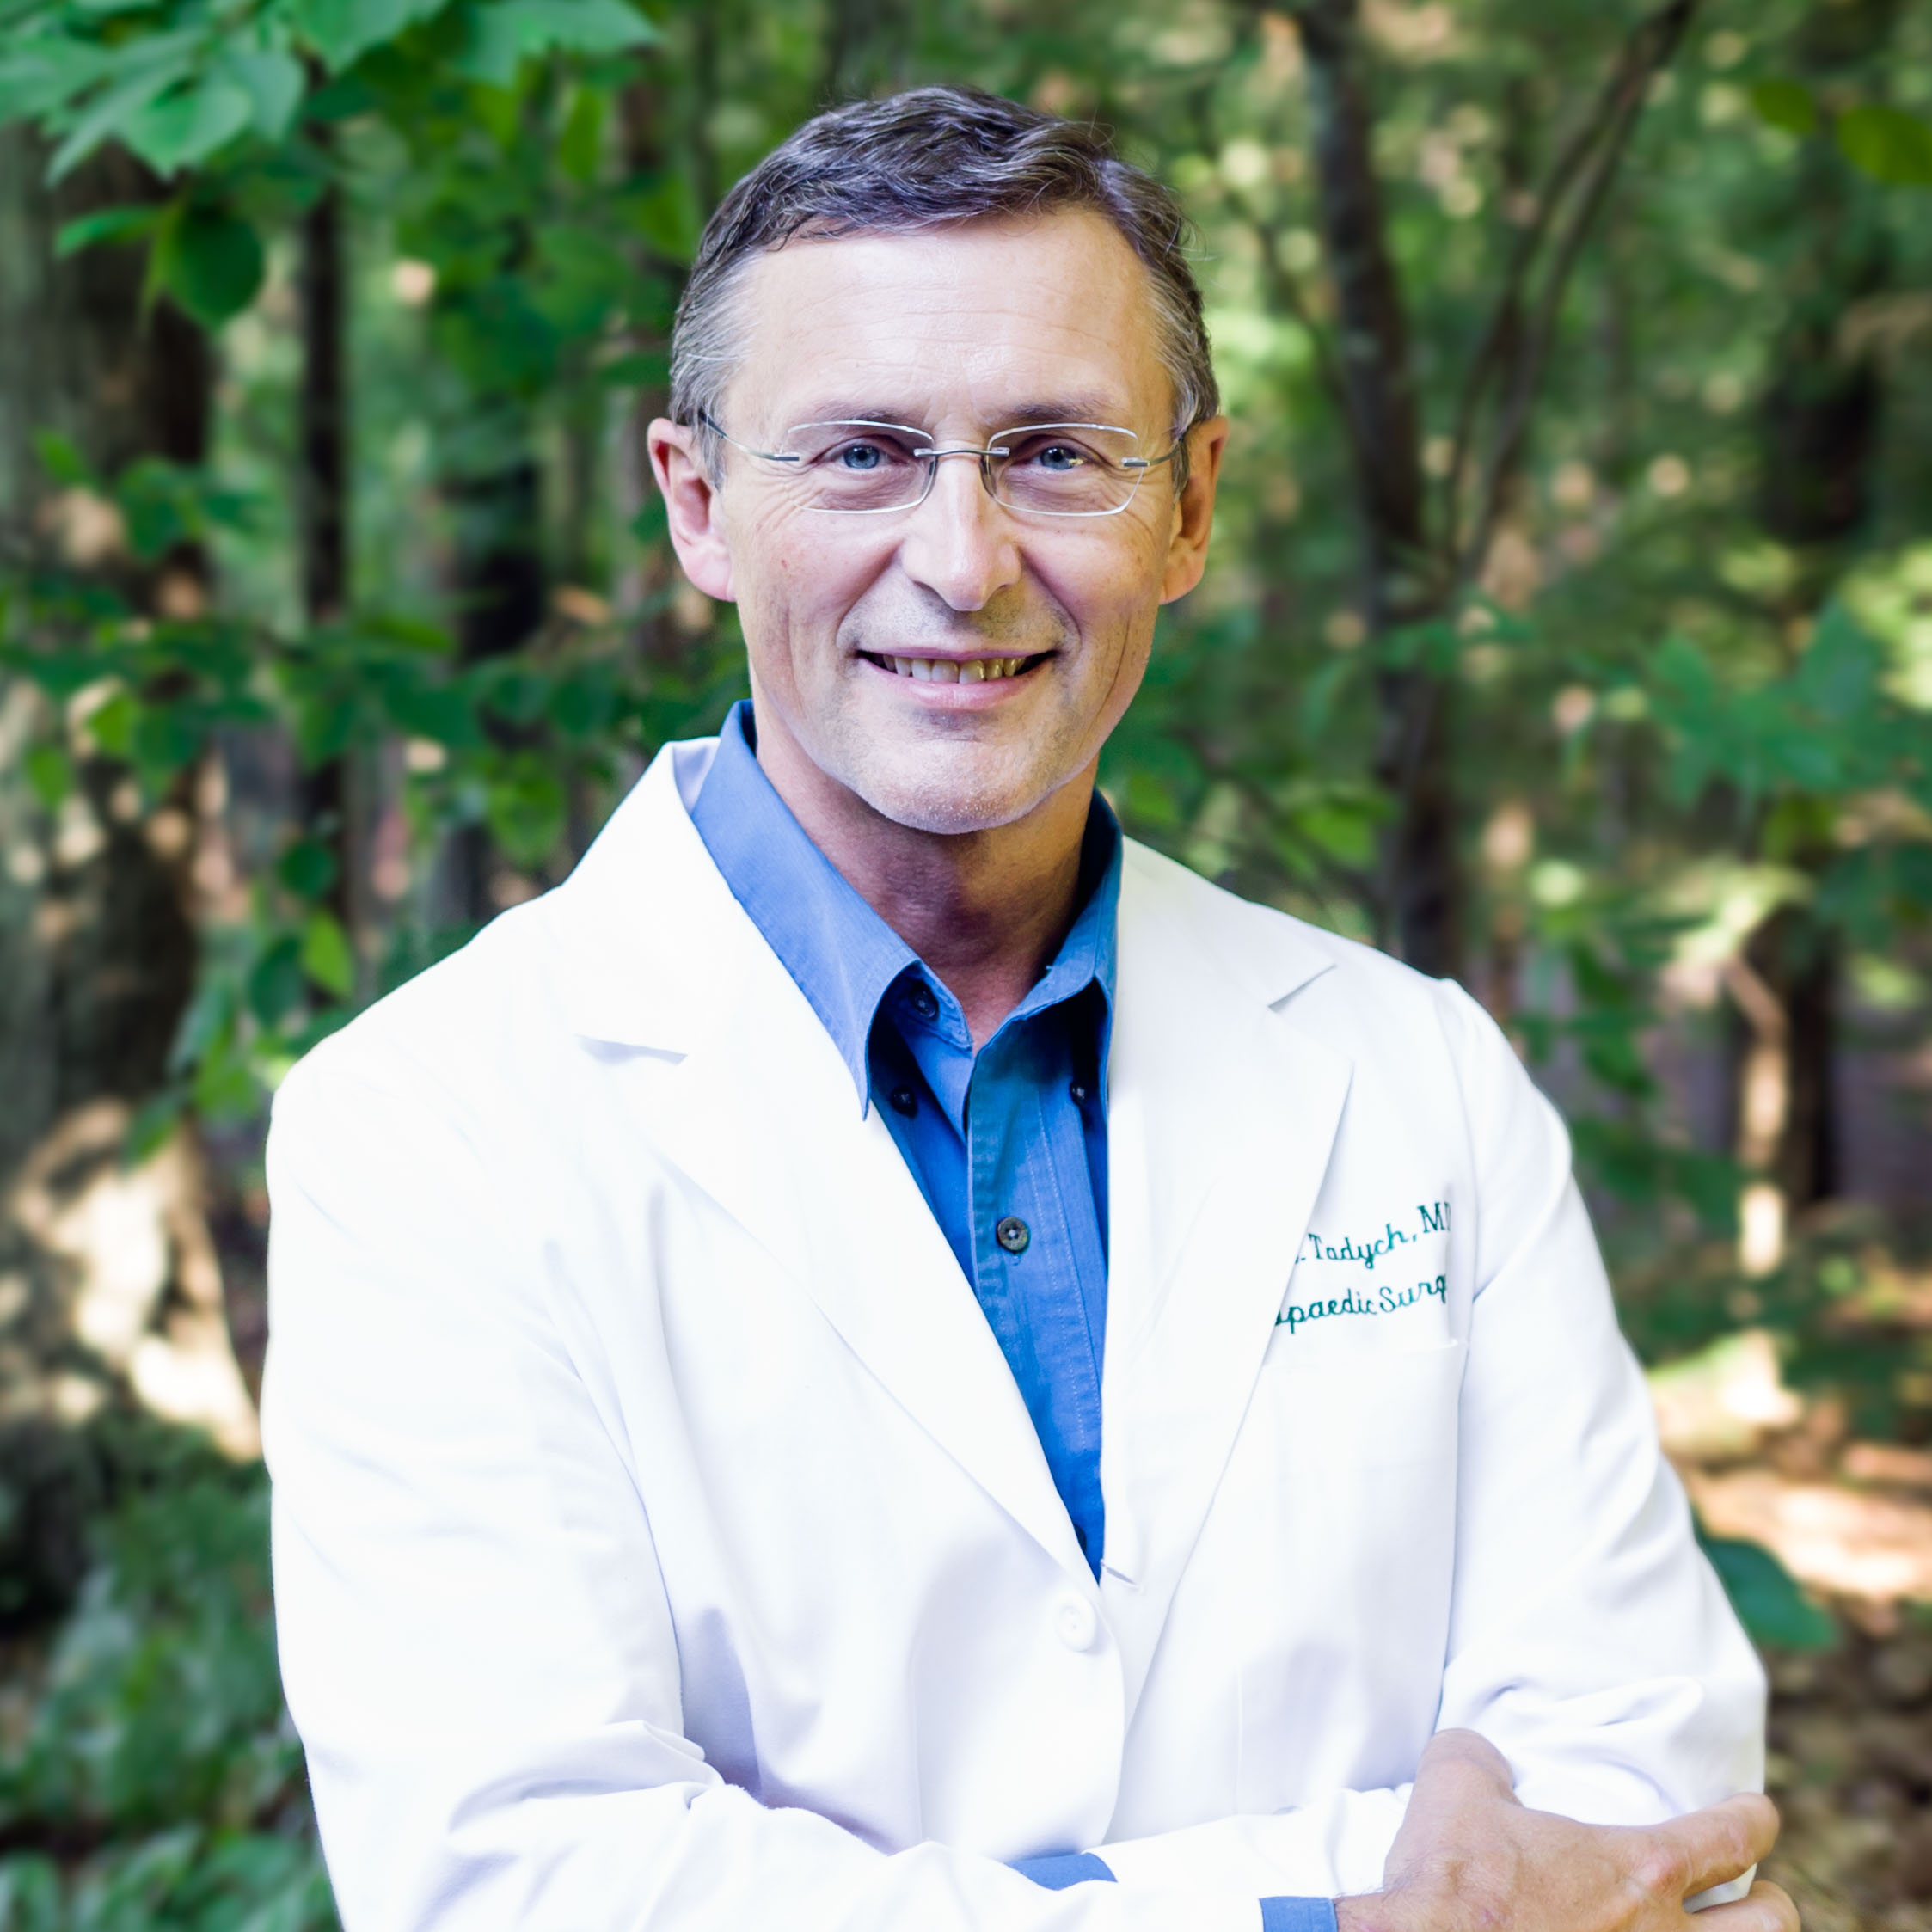 Dr. Kevin Tadych, MD